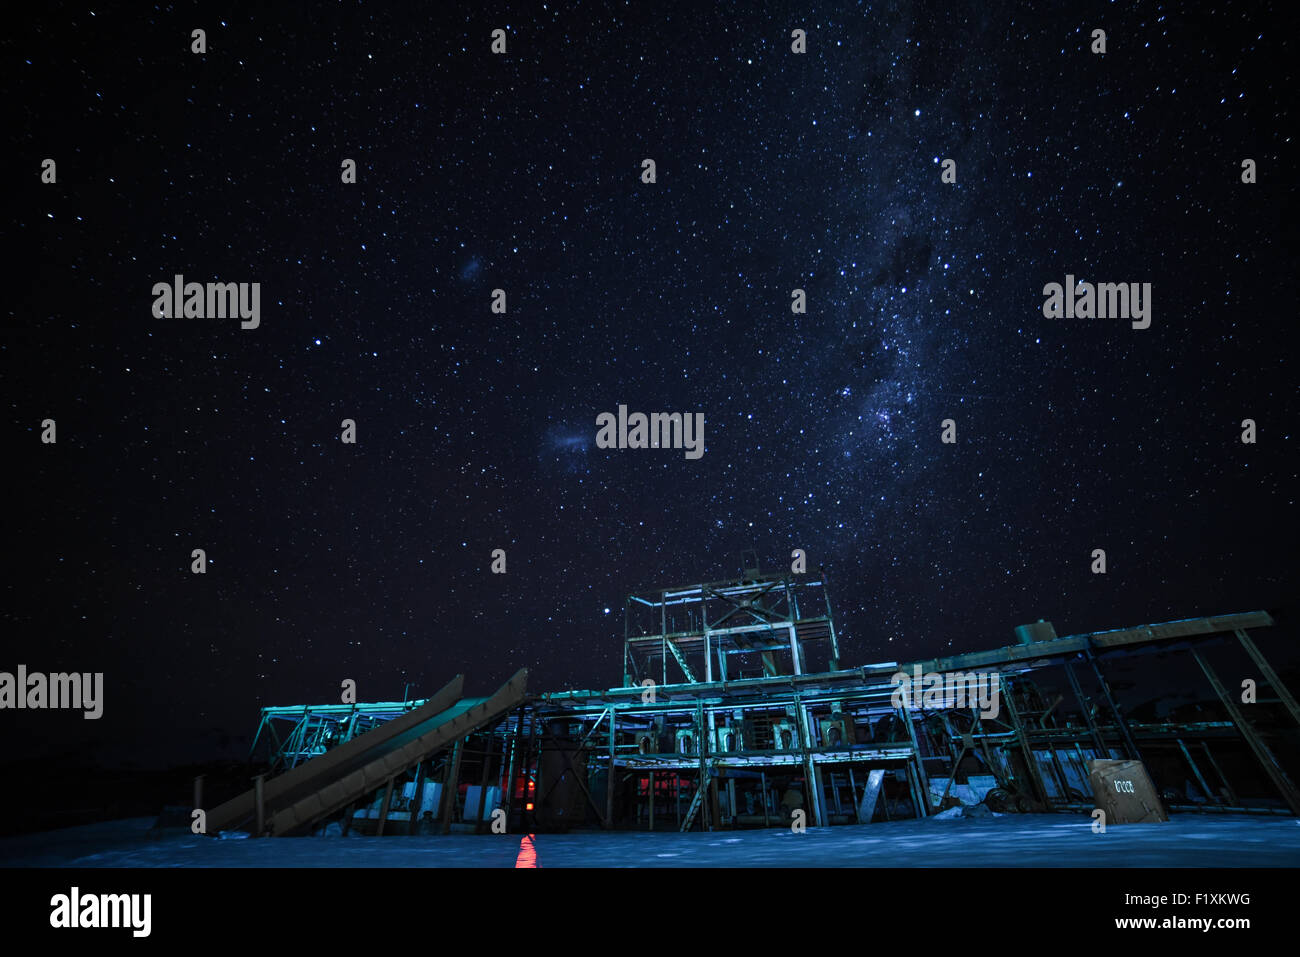 Bright stars during a winter's night above the abandoned whaling station in Grytviken, South Gerogia. - Stock Image